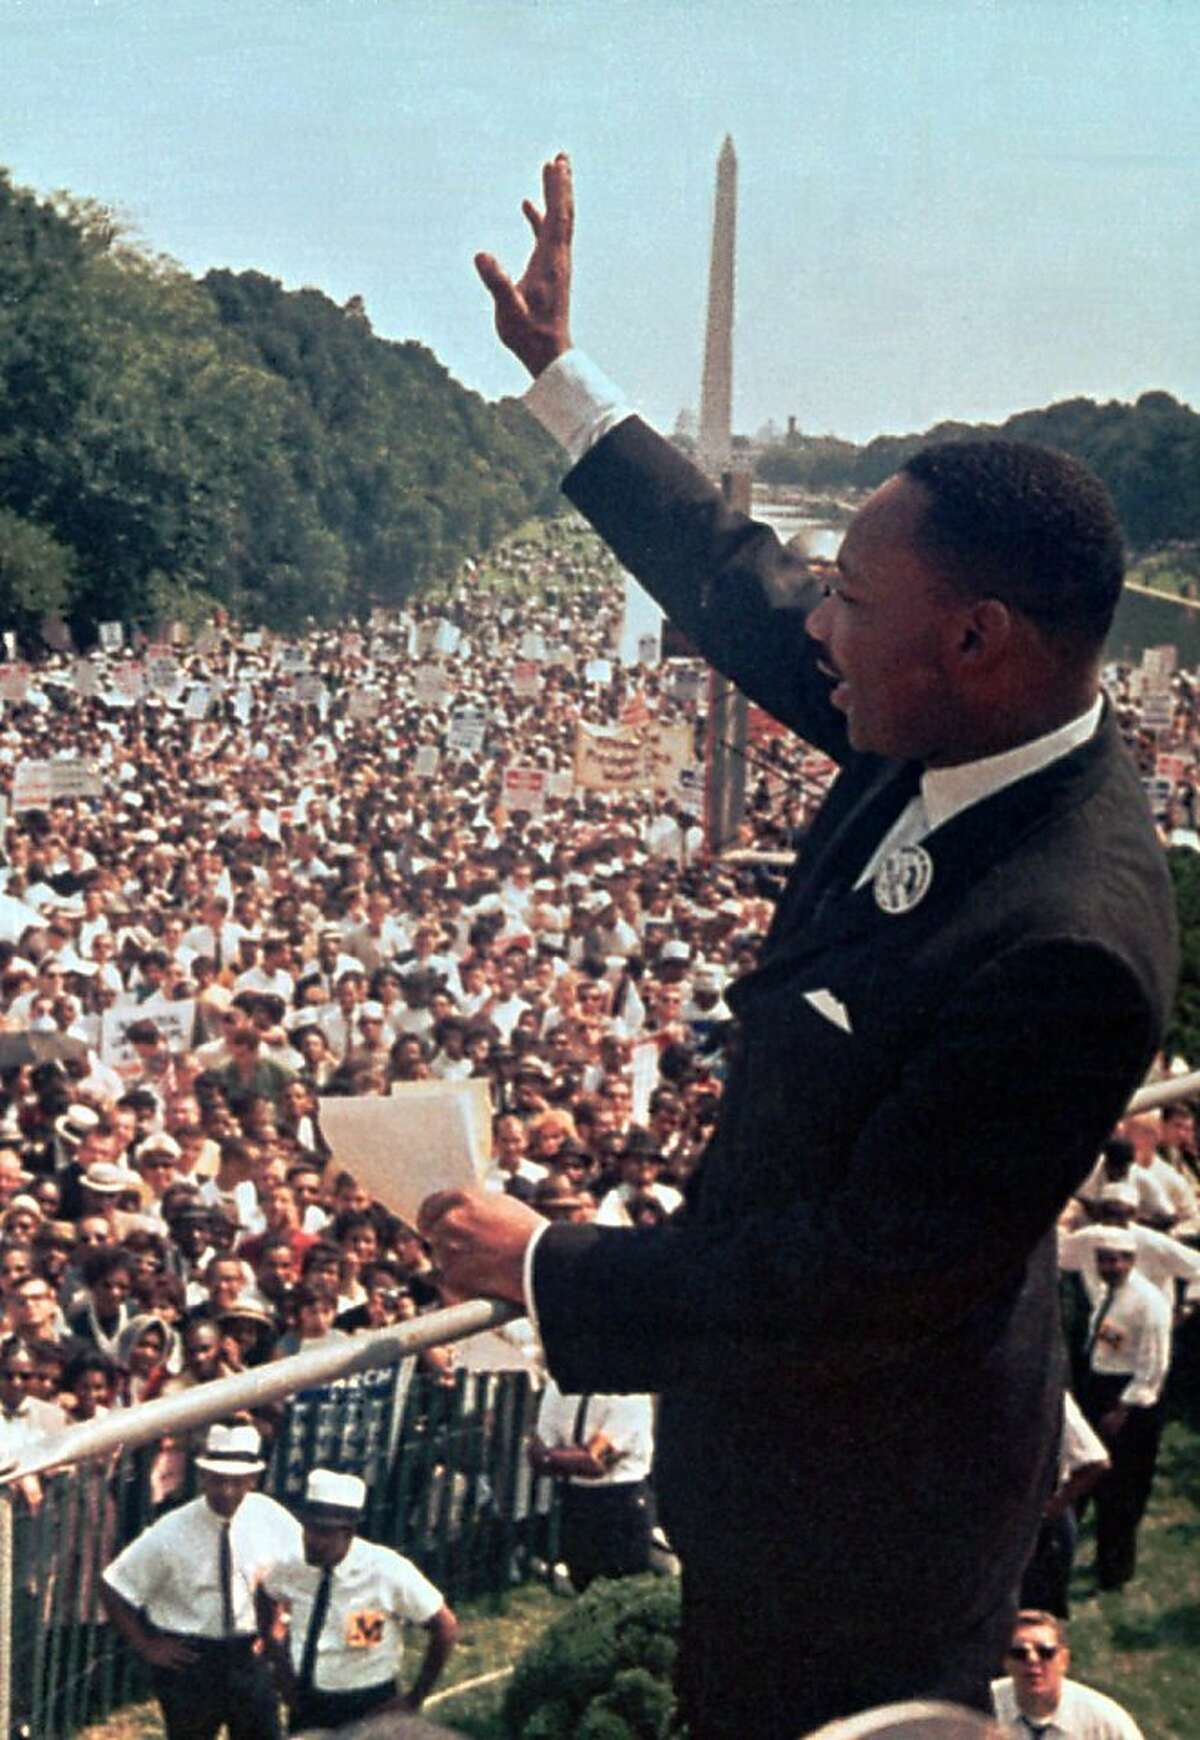 """ADVANCE FOR USE SUNDAY, JAN. 13, 2013 AND THEREAFTER - FILE - In this Aug. 28, 1963 file photo, The Rev. Martin Luther King Jr. waves to the crowd at the Lincoln Memorial for his """"I Have a Dream"""" speech during the March on Washington. The march was organized to support proposed civil rights legislation and end segregation. (AP Photo)"""